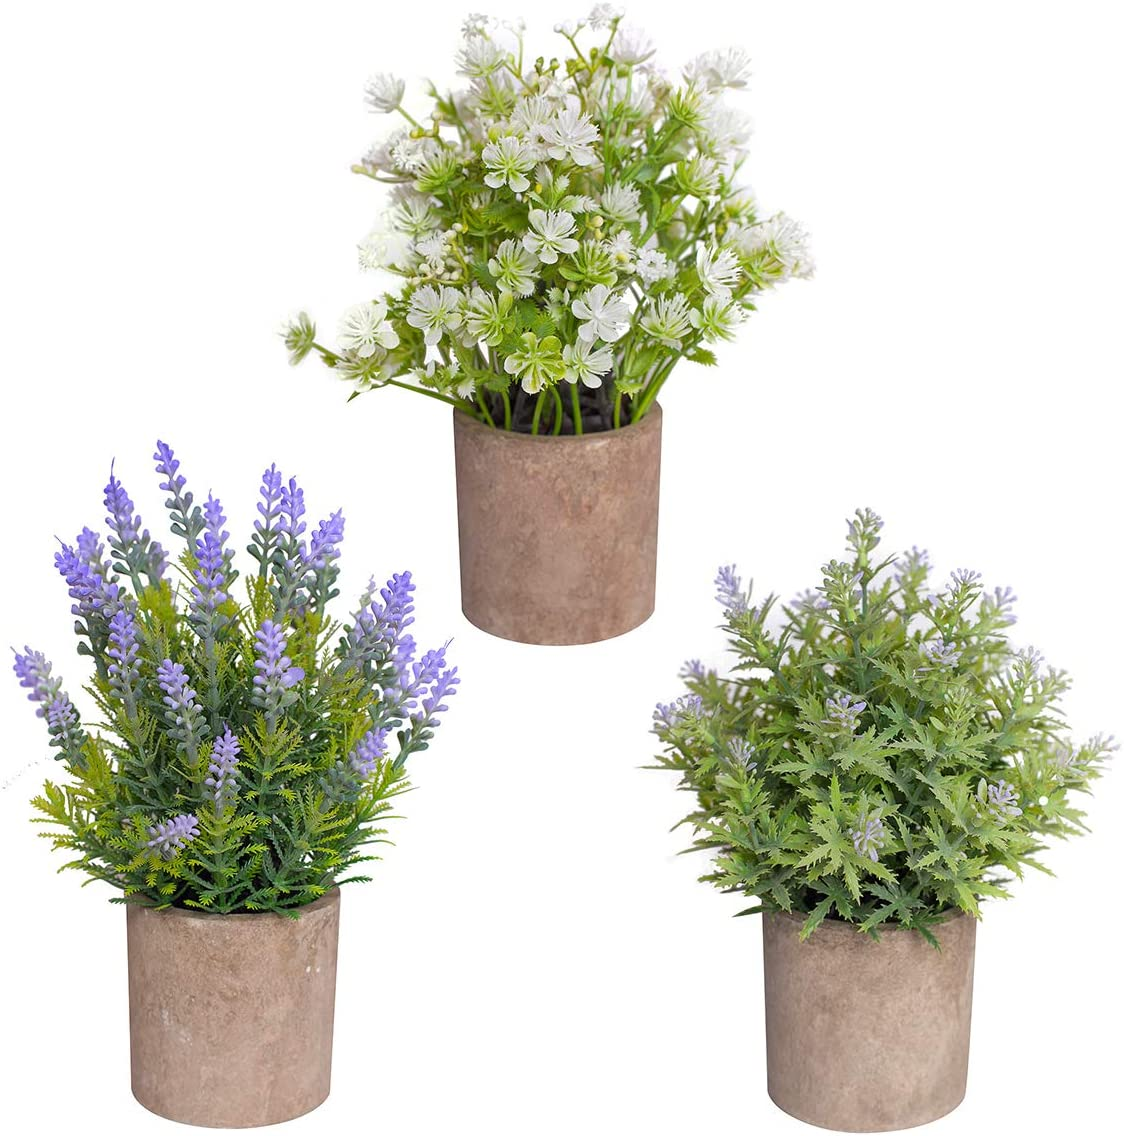 Binnny Flower Set of 3 Small Artificial Plants in Pots, Fake Lavender, White, Purple Potted Flowers Faux Greenery for Home Office Farmhouse Bathroom Tabletop Desk Indoor Decor